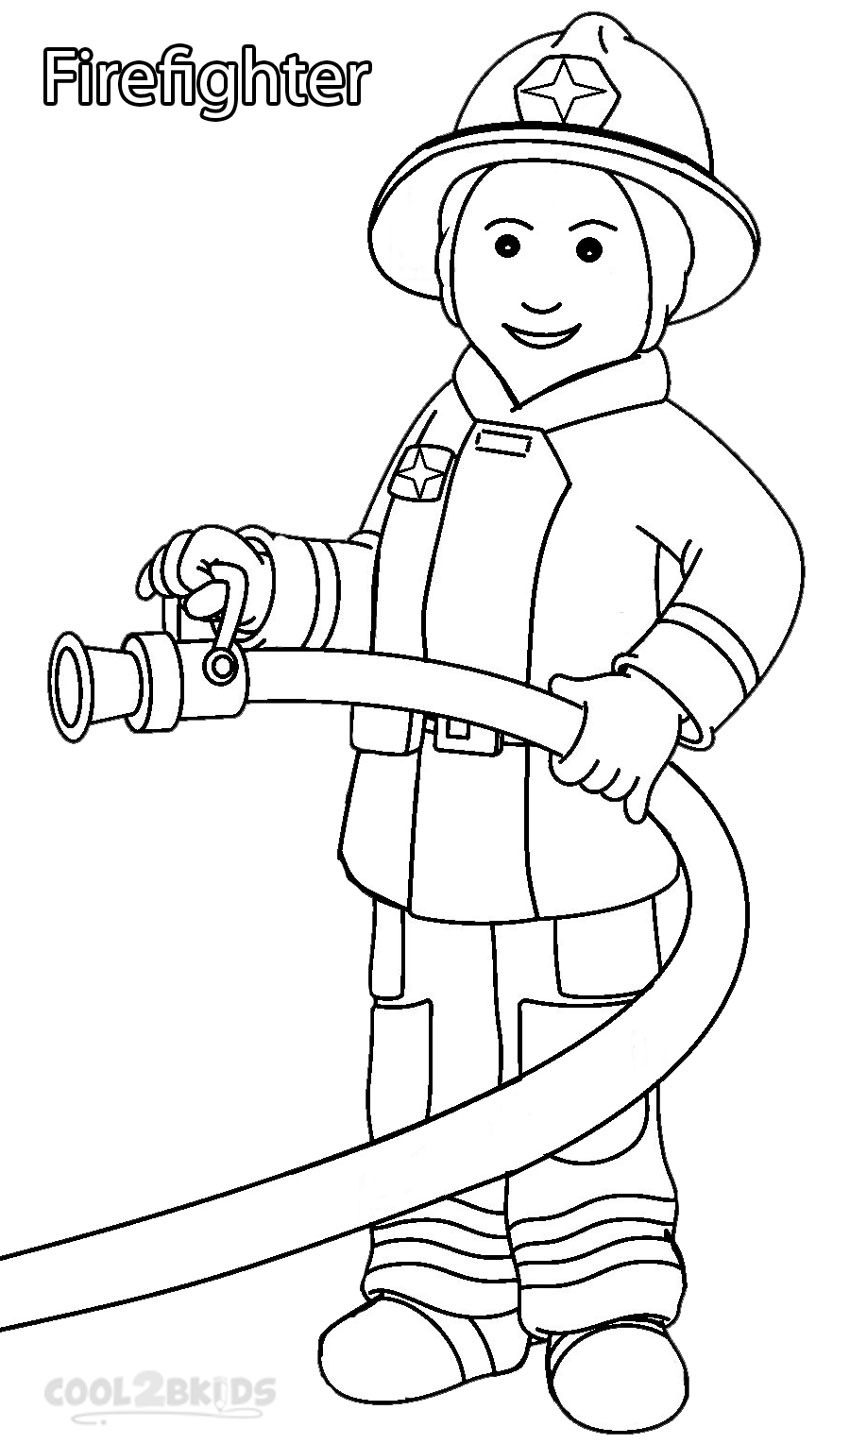 coloring pages of community helpers free printable community helper coloring pages for kids helpers community coloring pages of